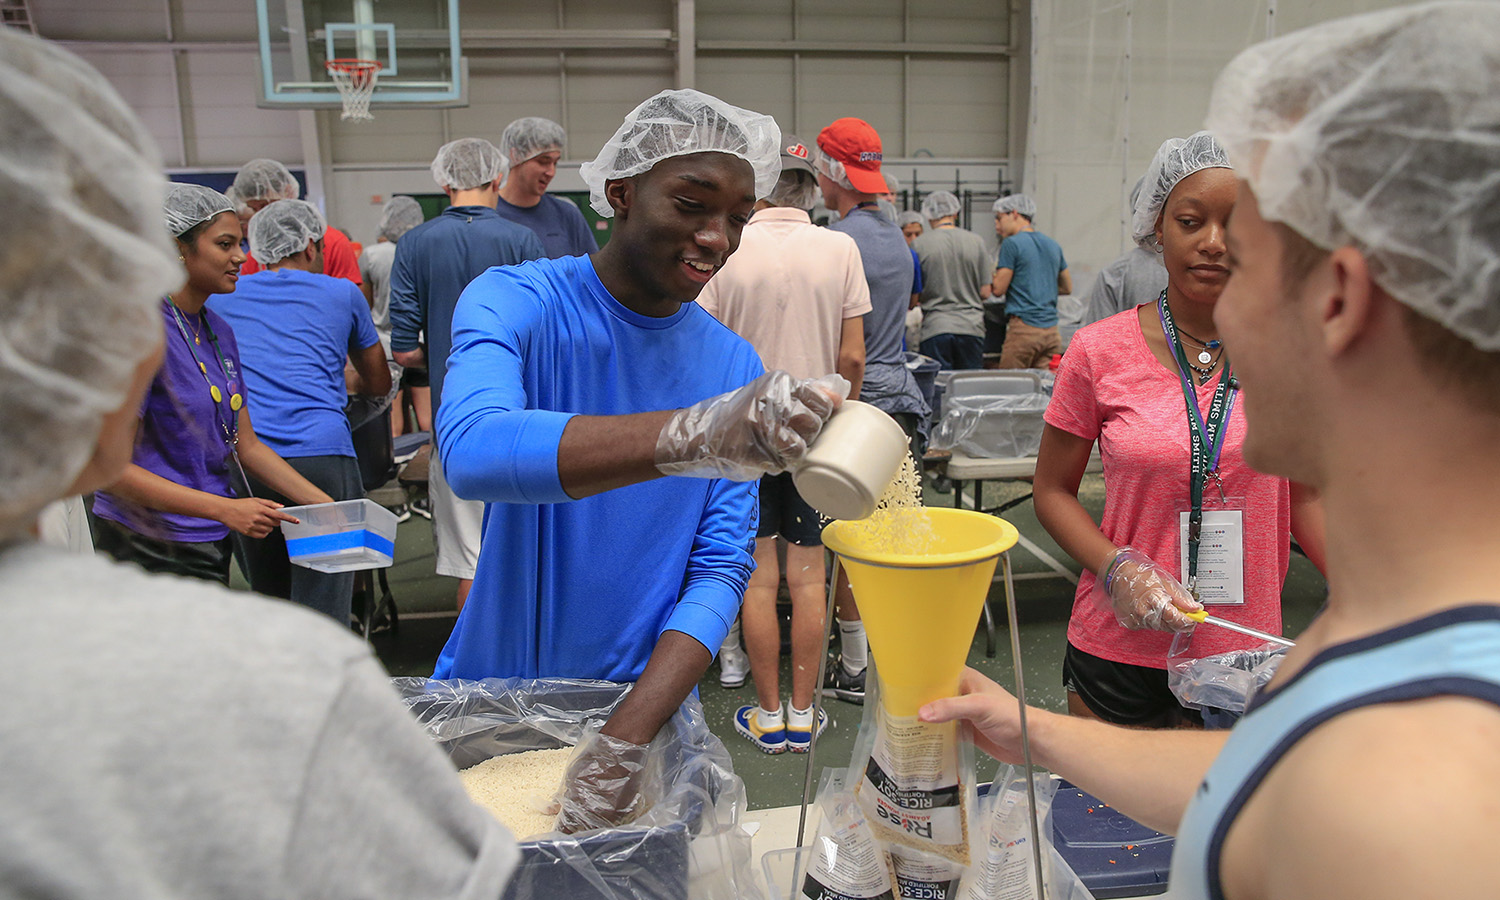 During the 2018 Day of Service, Michael Bamah '22 packages meals at Bristol Feild House for delivery to poverty-stricken areas around the world. The event was coordinated in conjunction with Rise Against Hunger, the international relief organization.